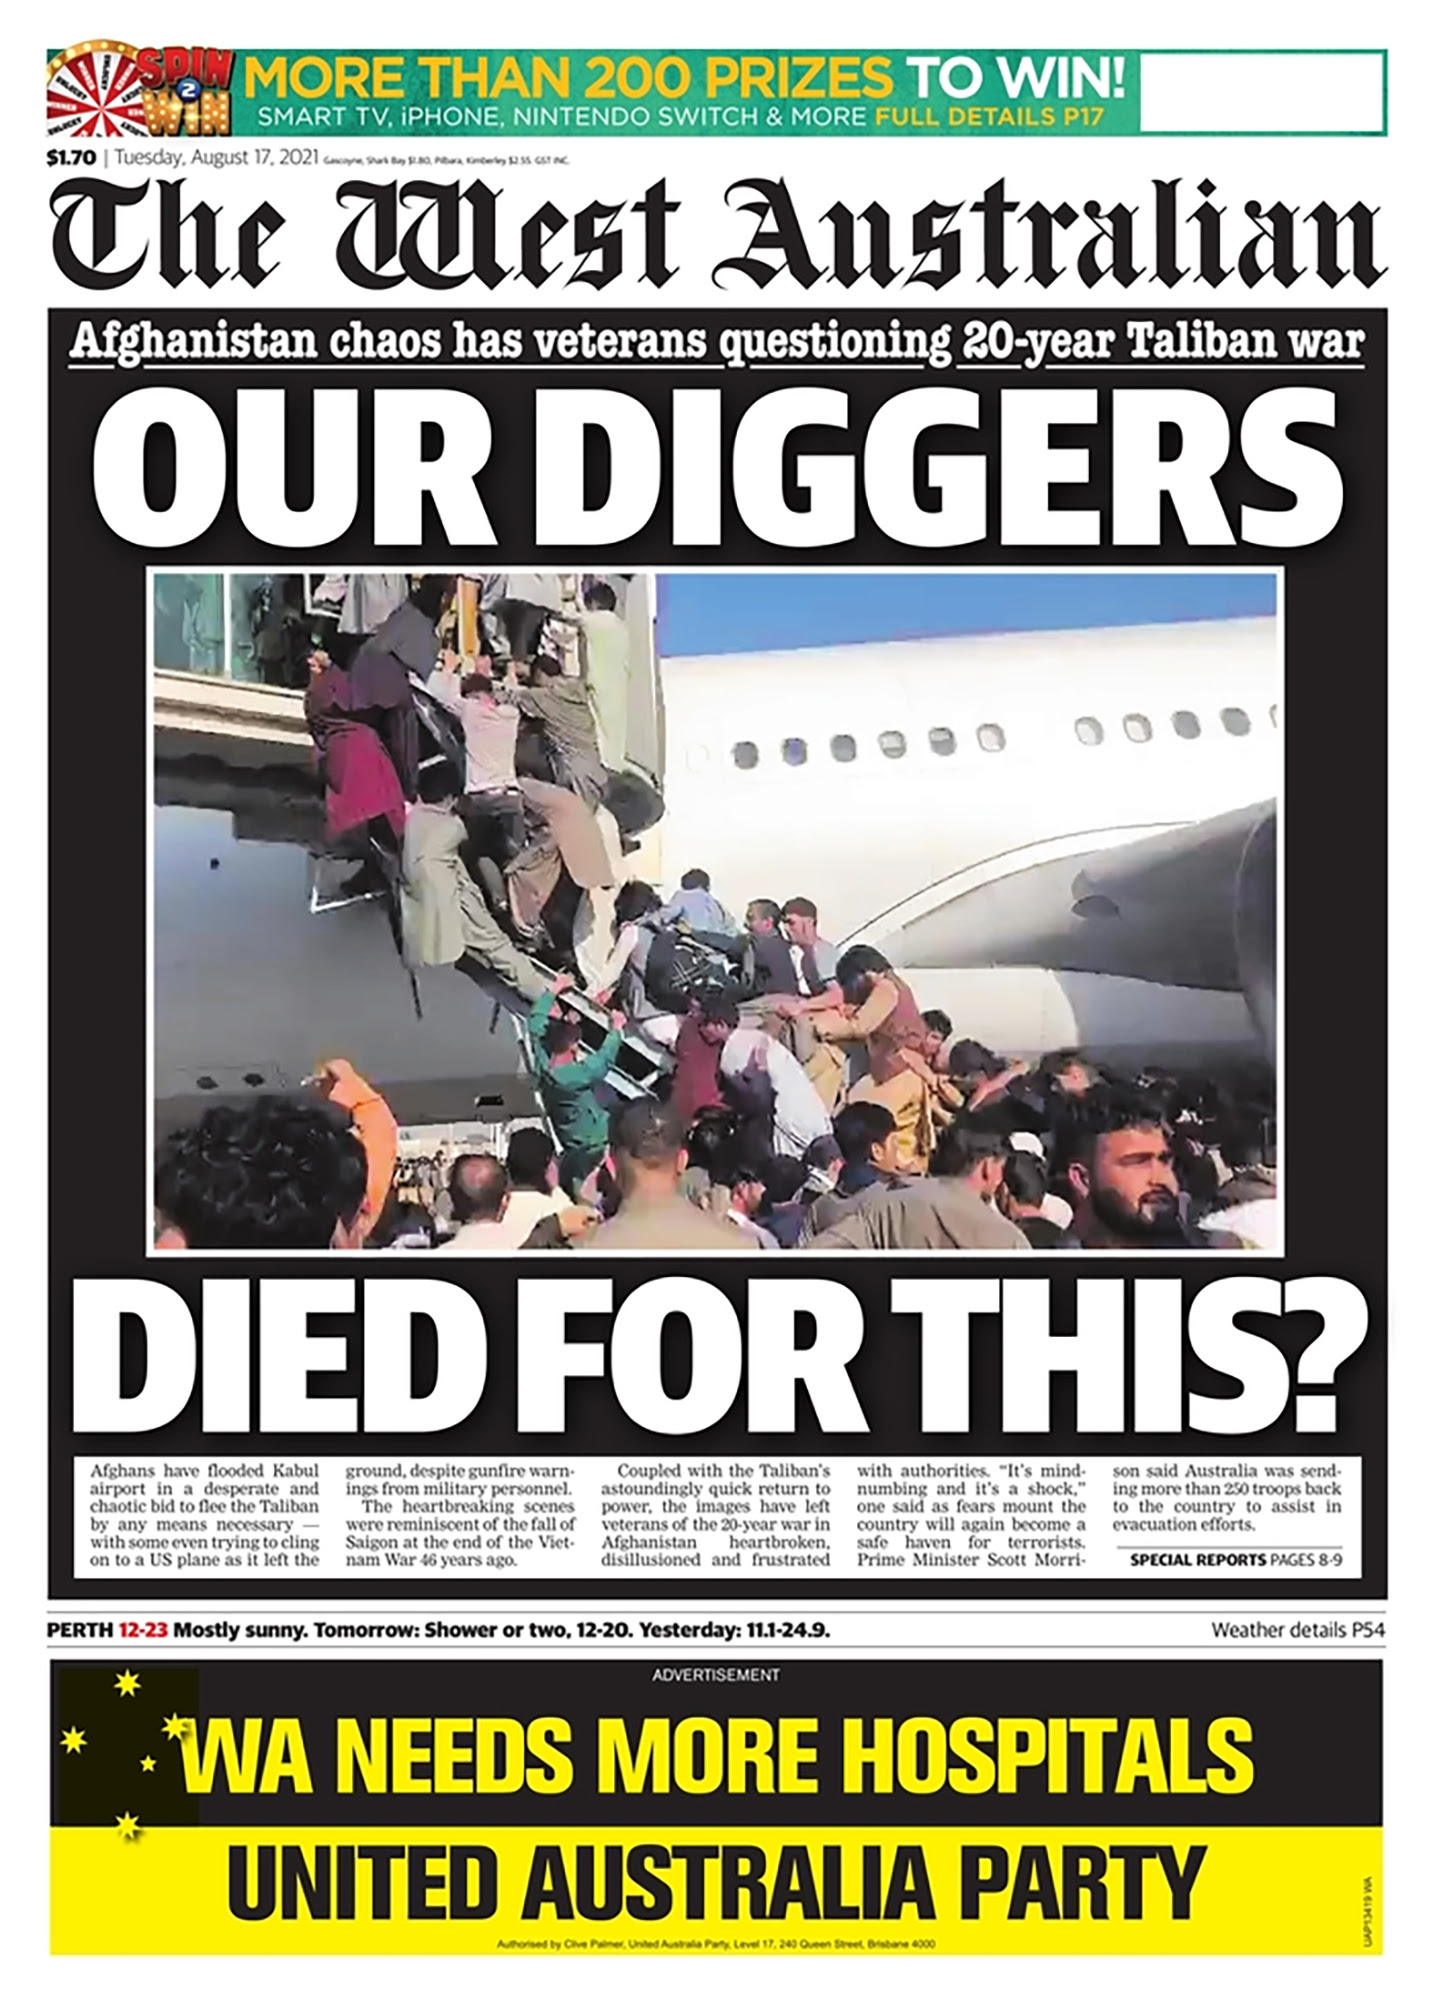 The West Australian front page